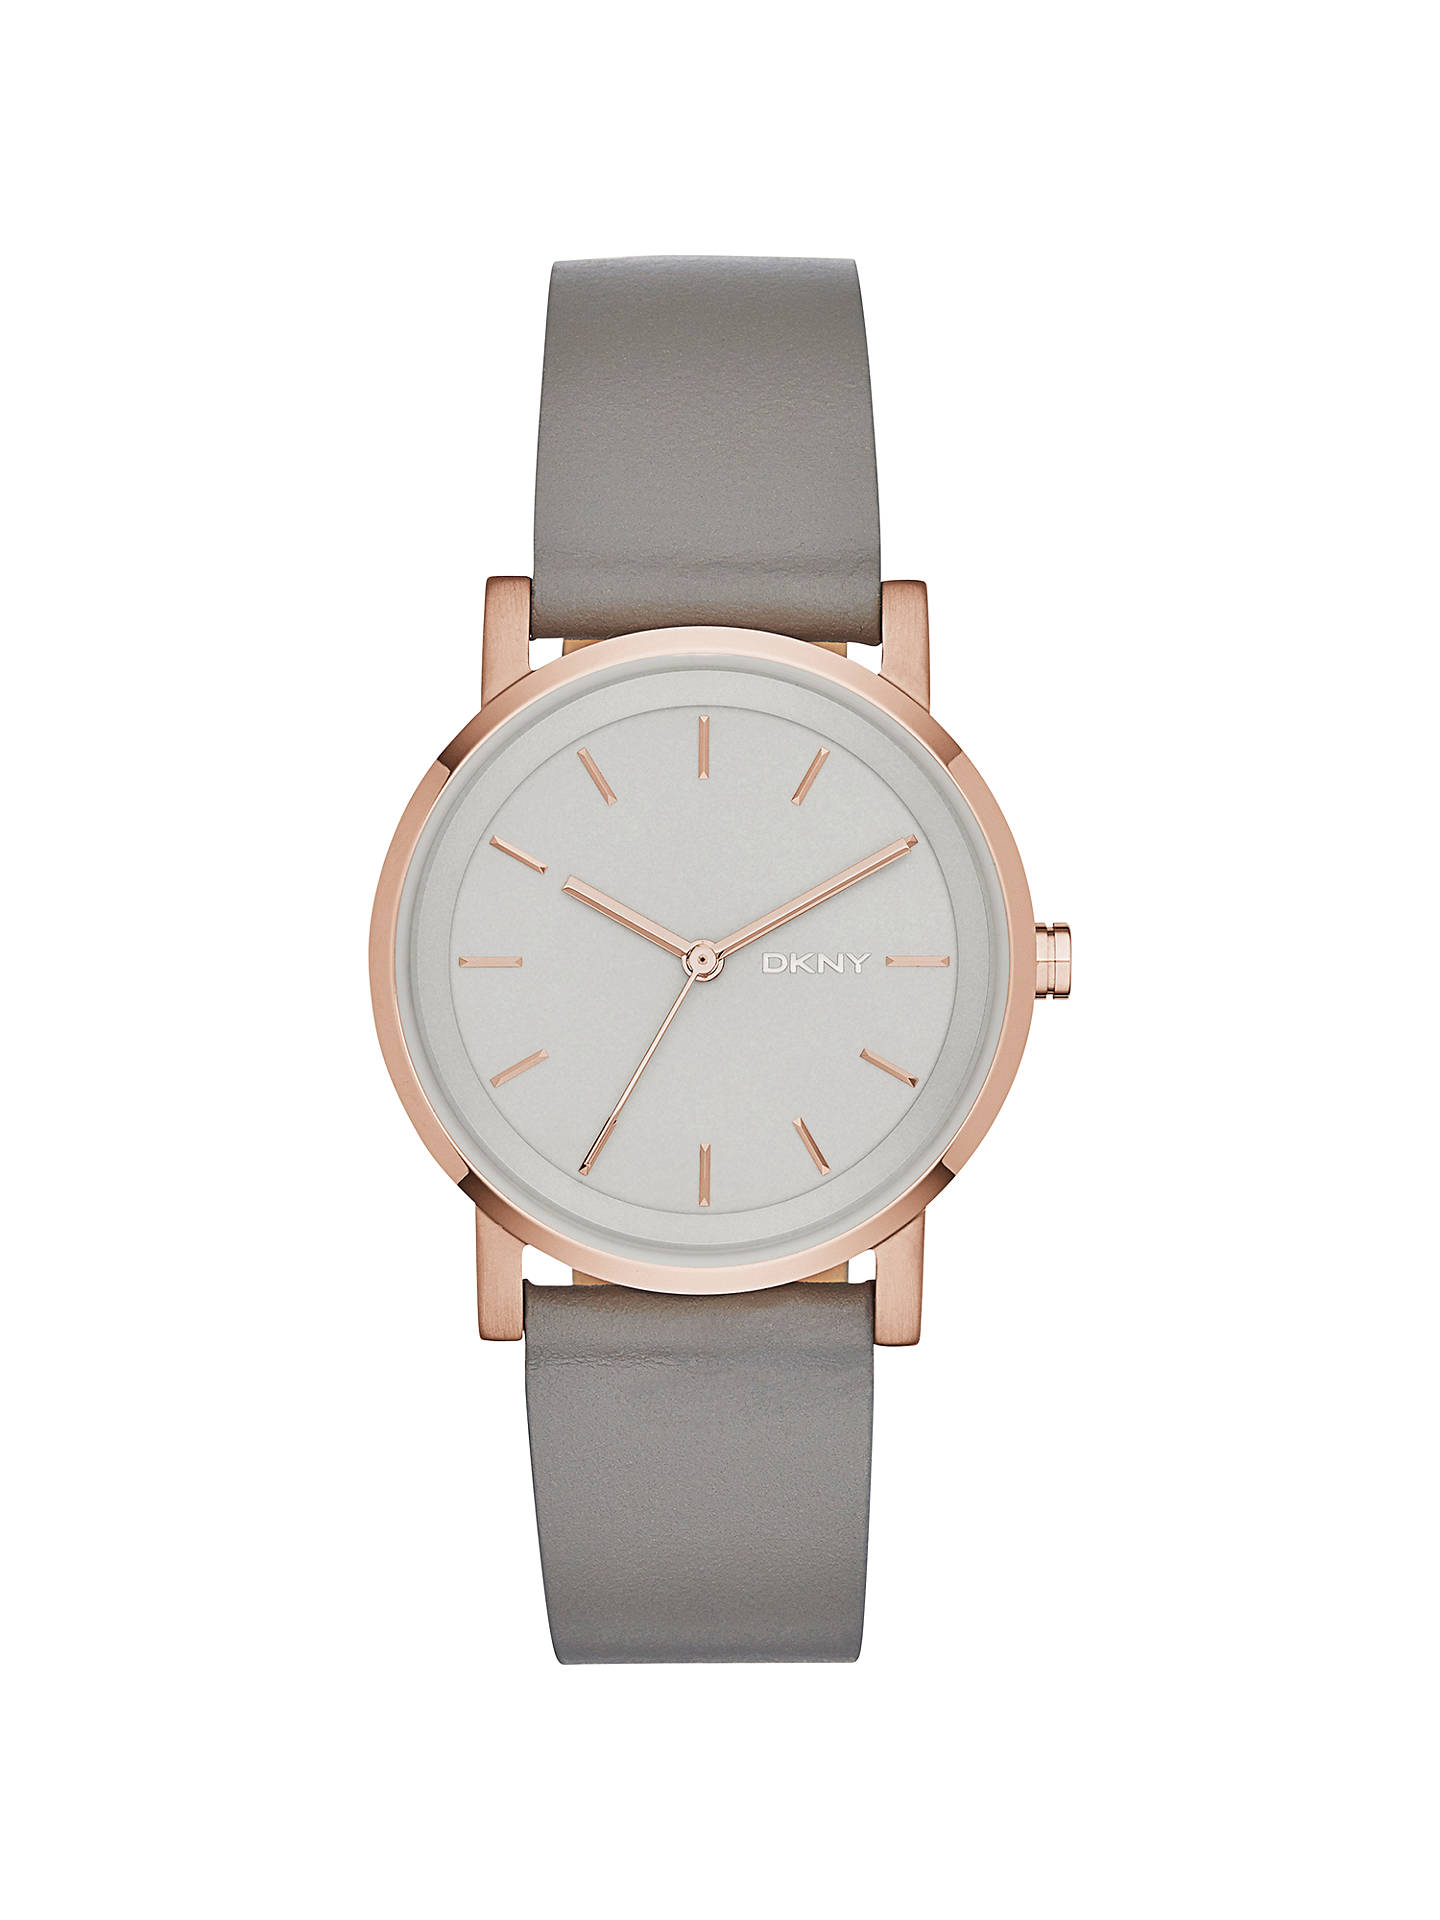 Buy DKNY NY2341 Women's SoHo Leather Strap Watch, Grey Online at johnlewis.com